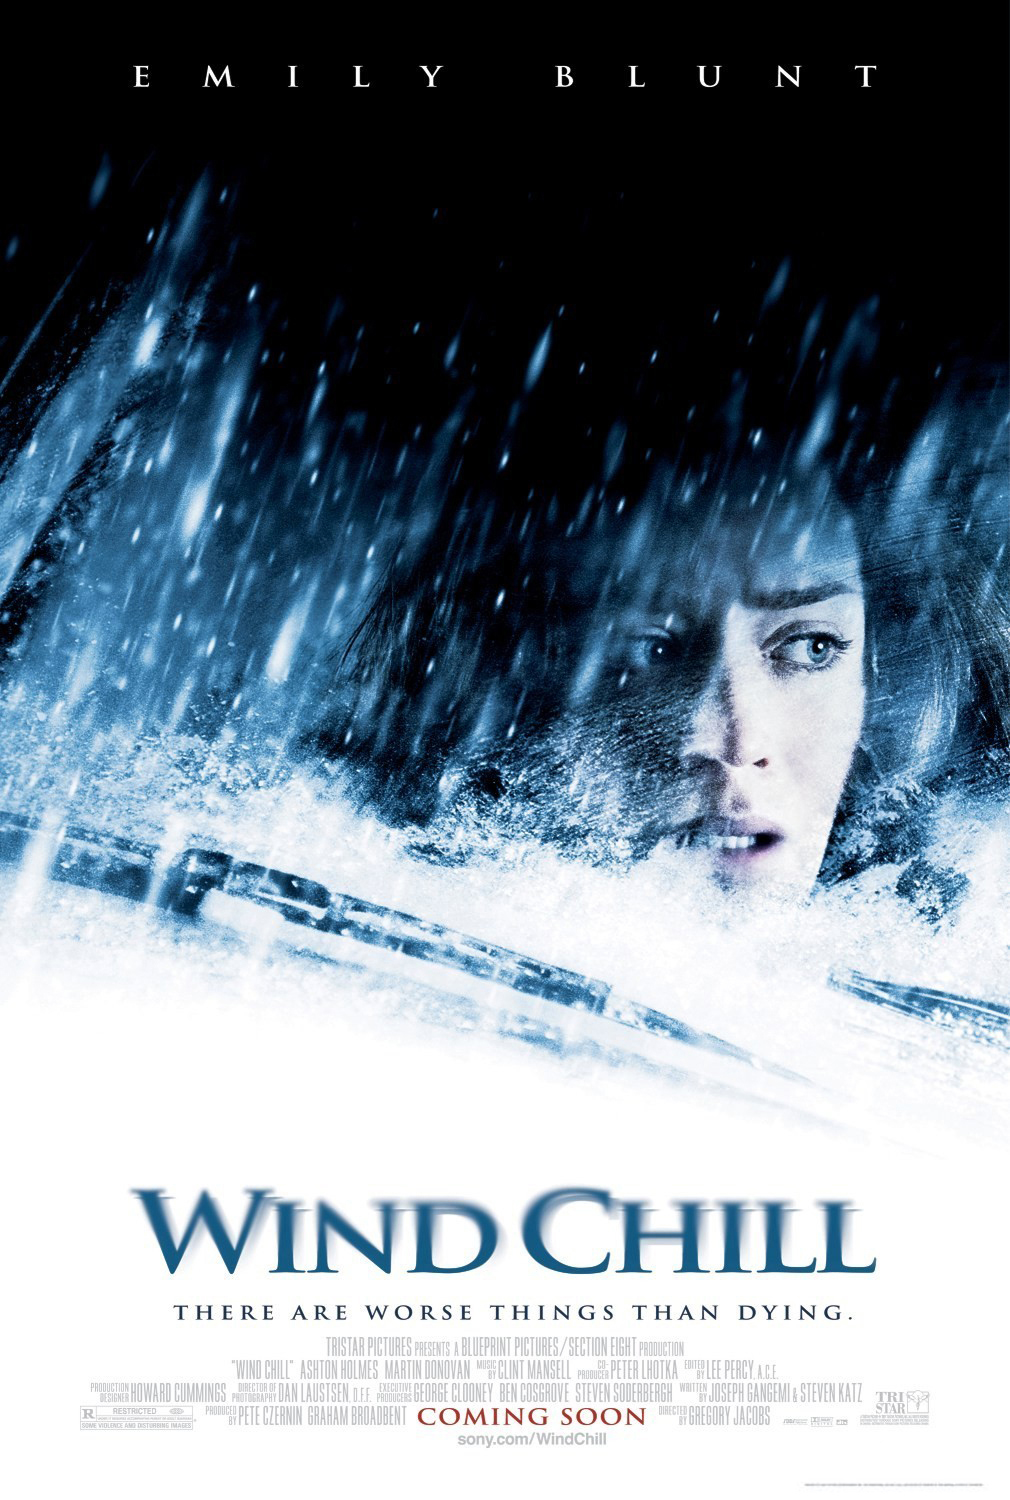 悠悠MP4_MP4电影下载_阴风鬼影/断魂谷 Wind.Chill.2007.1080p.BluRay.x264-PSYCHD 6.56GB